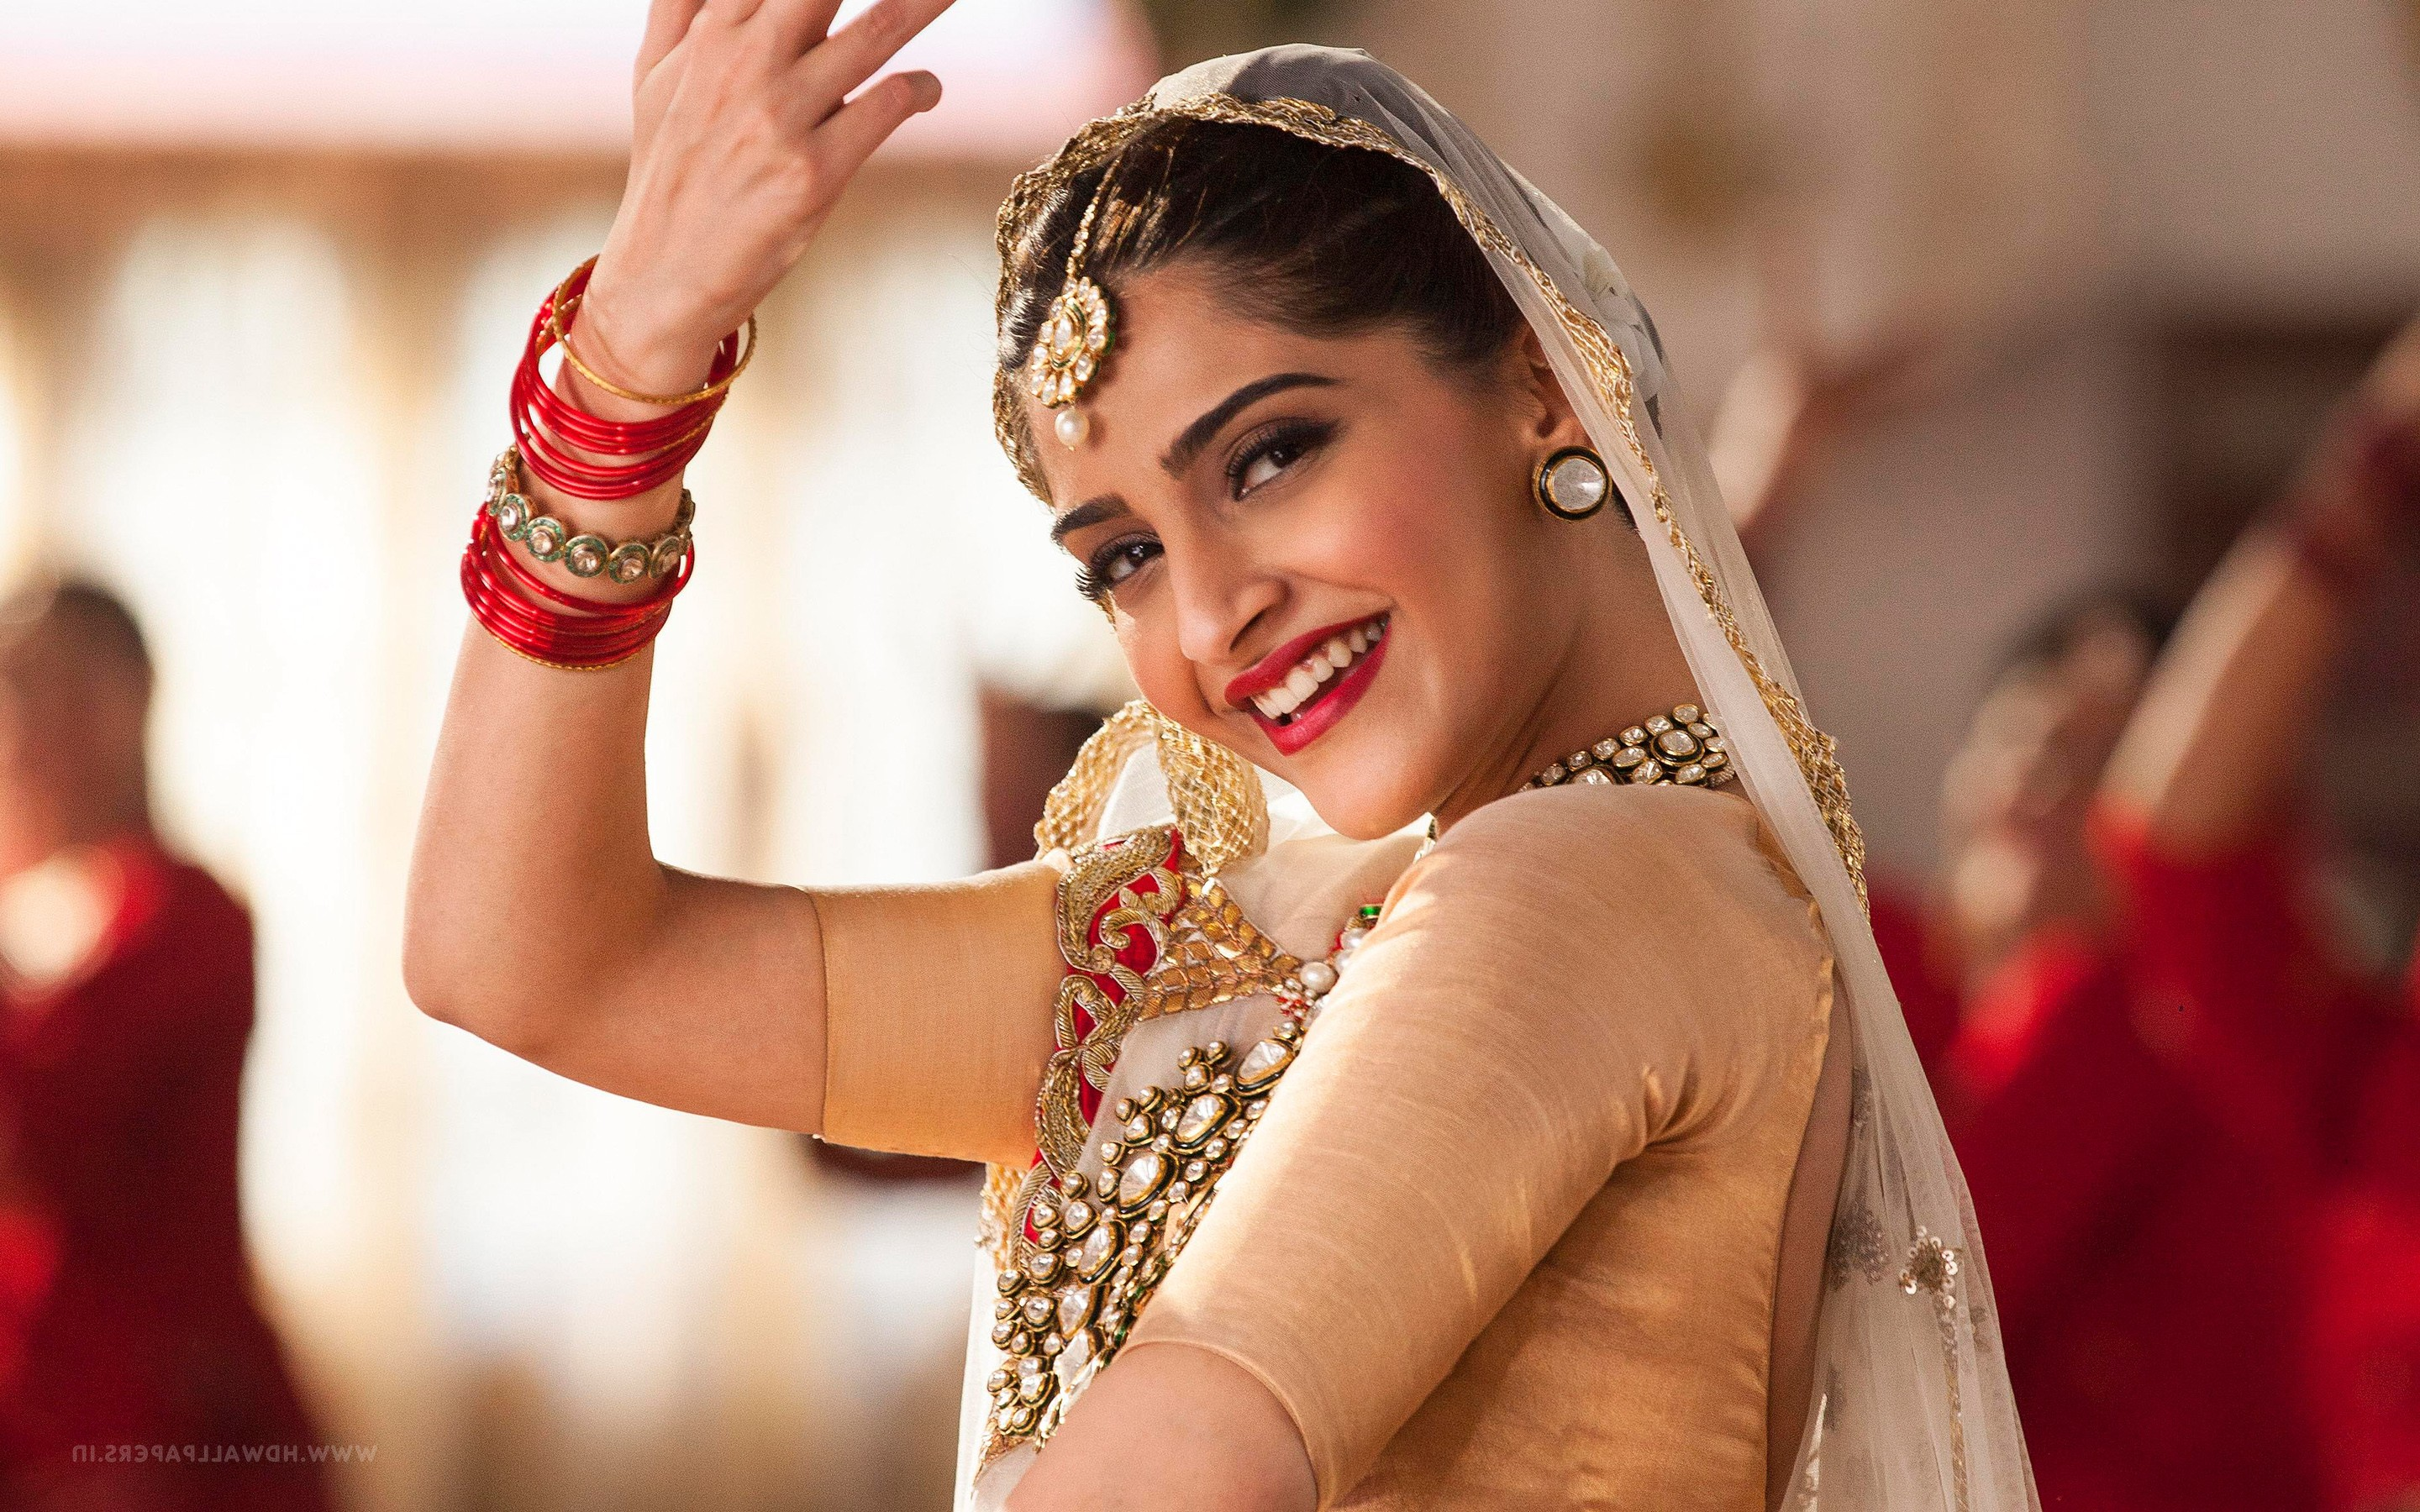 sonam kapoor 5, hd celebrities, 4k wallpapers, images, backgrounds